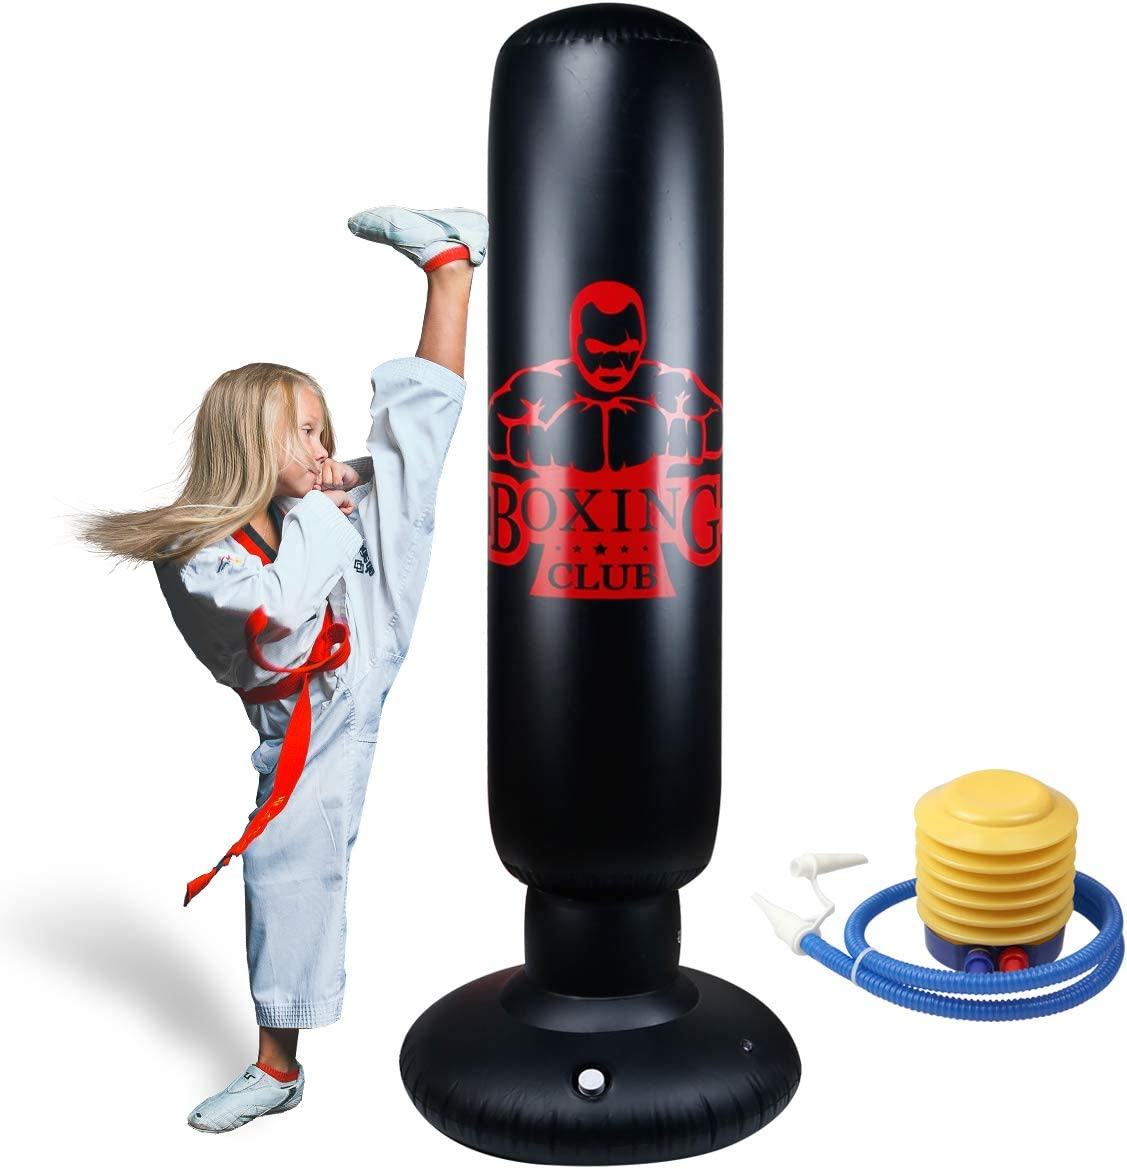 Locsee Punching Bag for Kids, PVC Thickening Inflatable Fitness Freestanding Boxing Bag for Kids Adults Tumbler Fighting Column Decompression Vent Toy Training Kickboxing Equipment(63 inch) : Sports & Outdoors